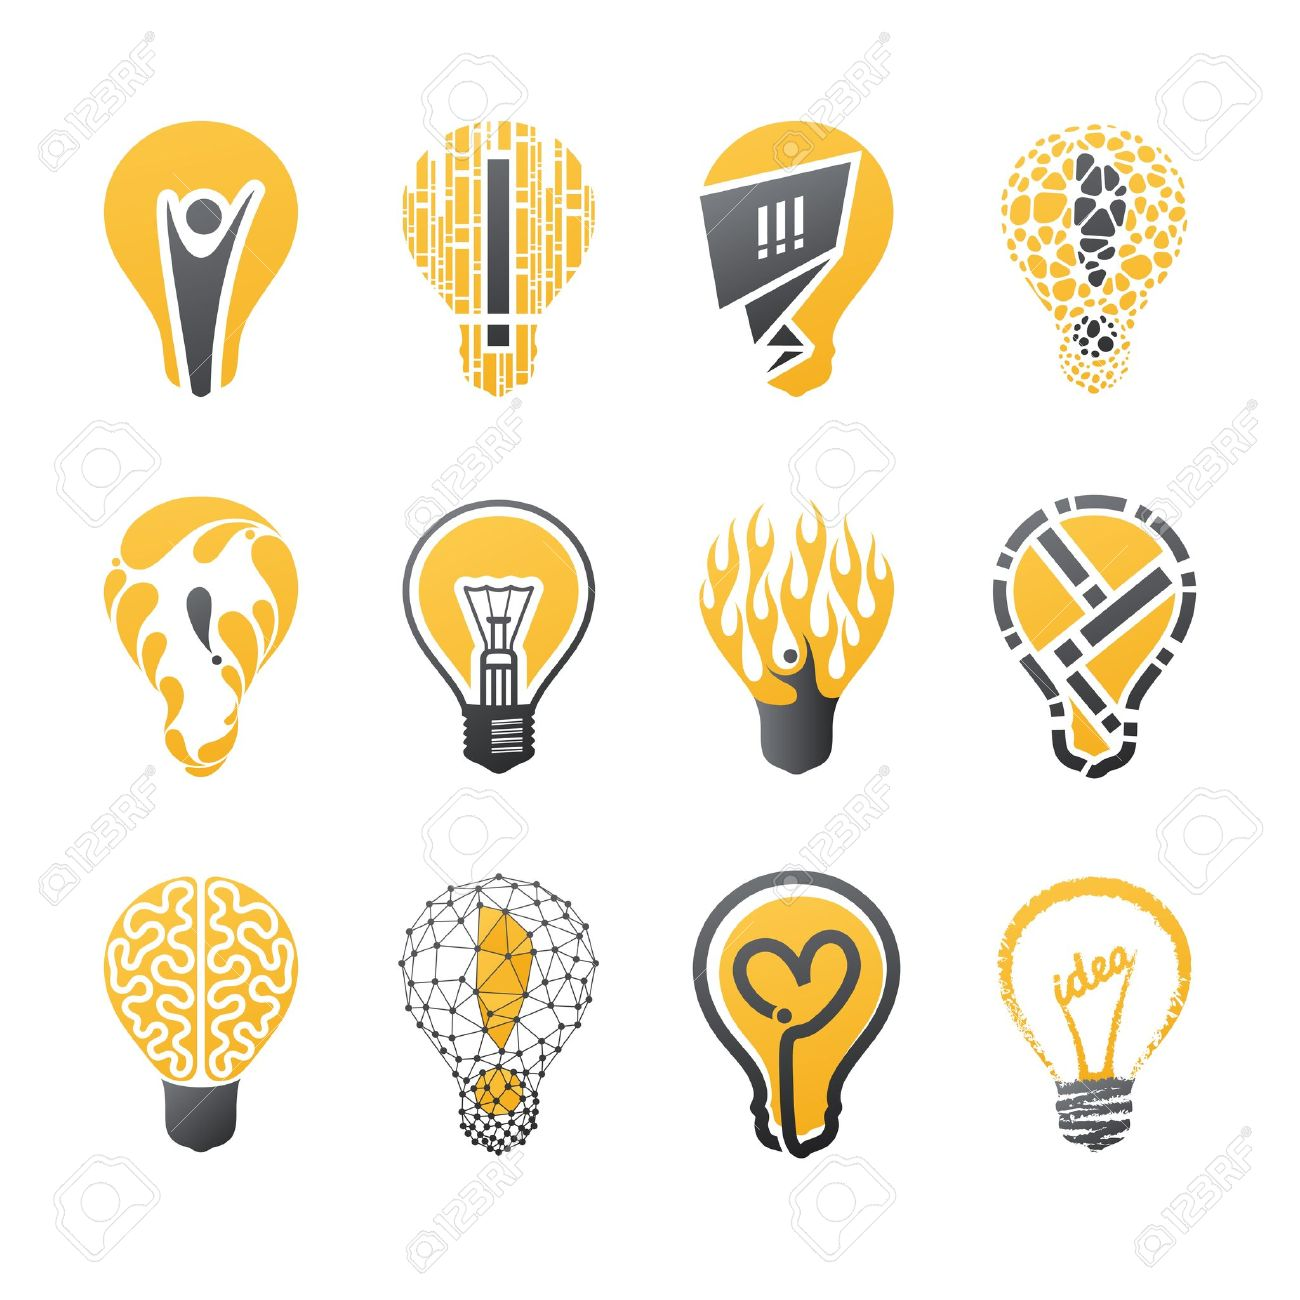 Idea Design sternform01jpg Light Bulb Idea Vector Logo Template Set Collection Of Design Elements Icons Set